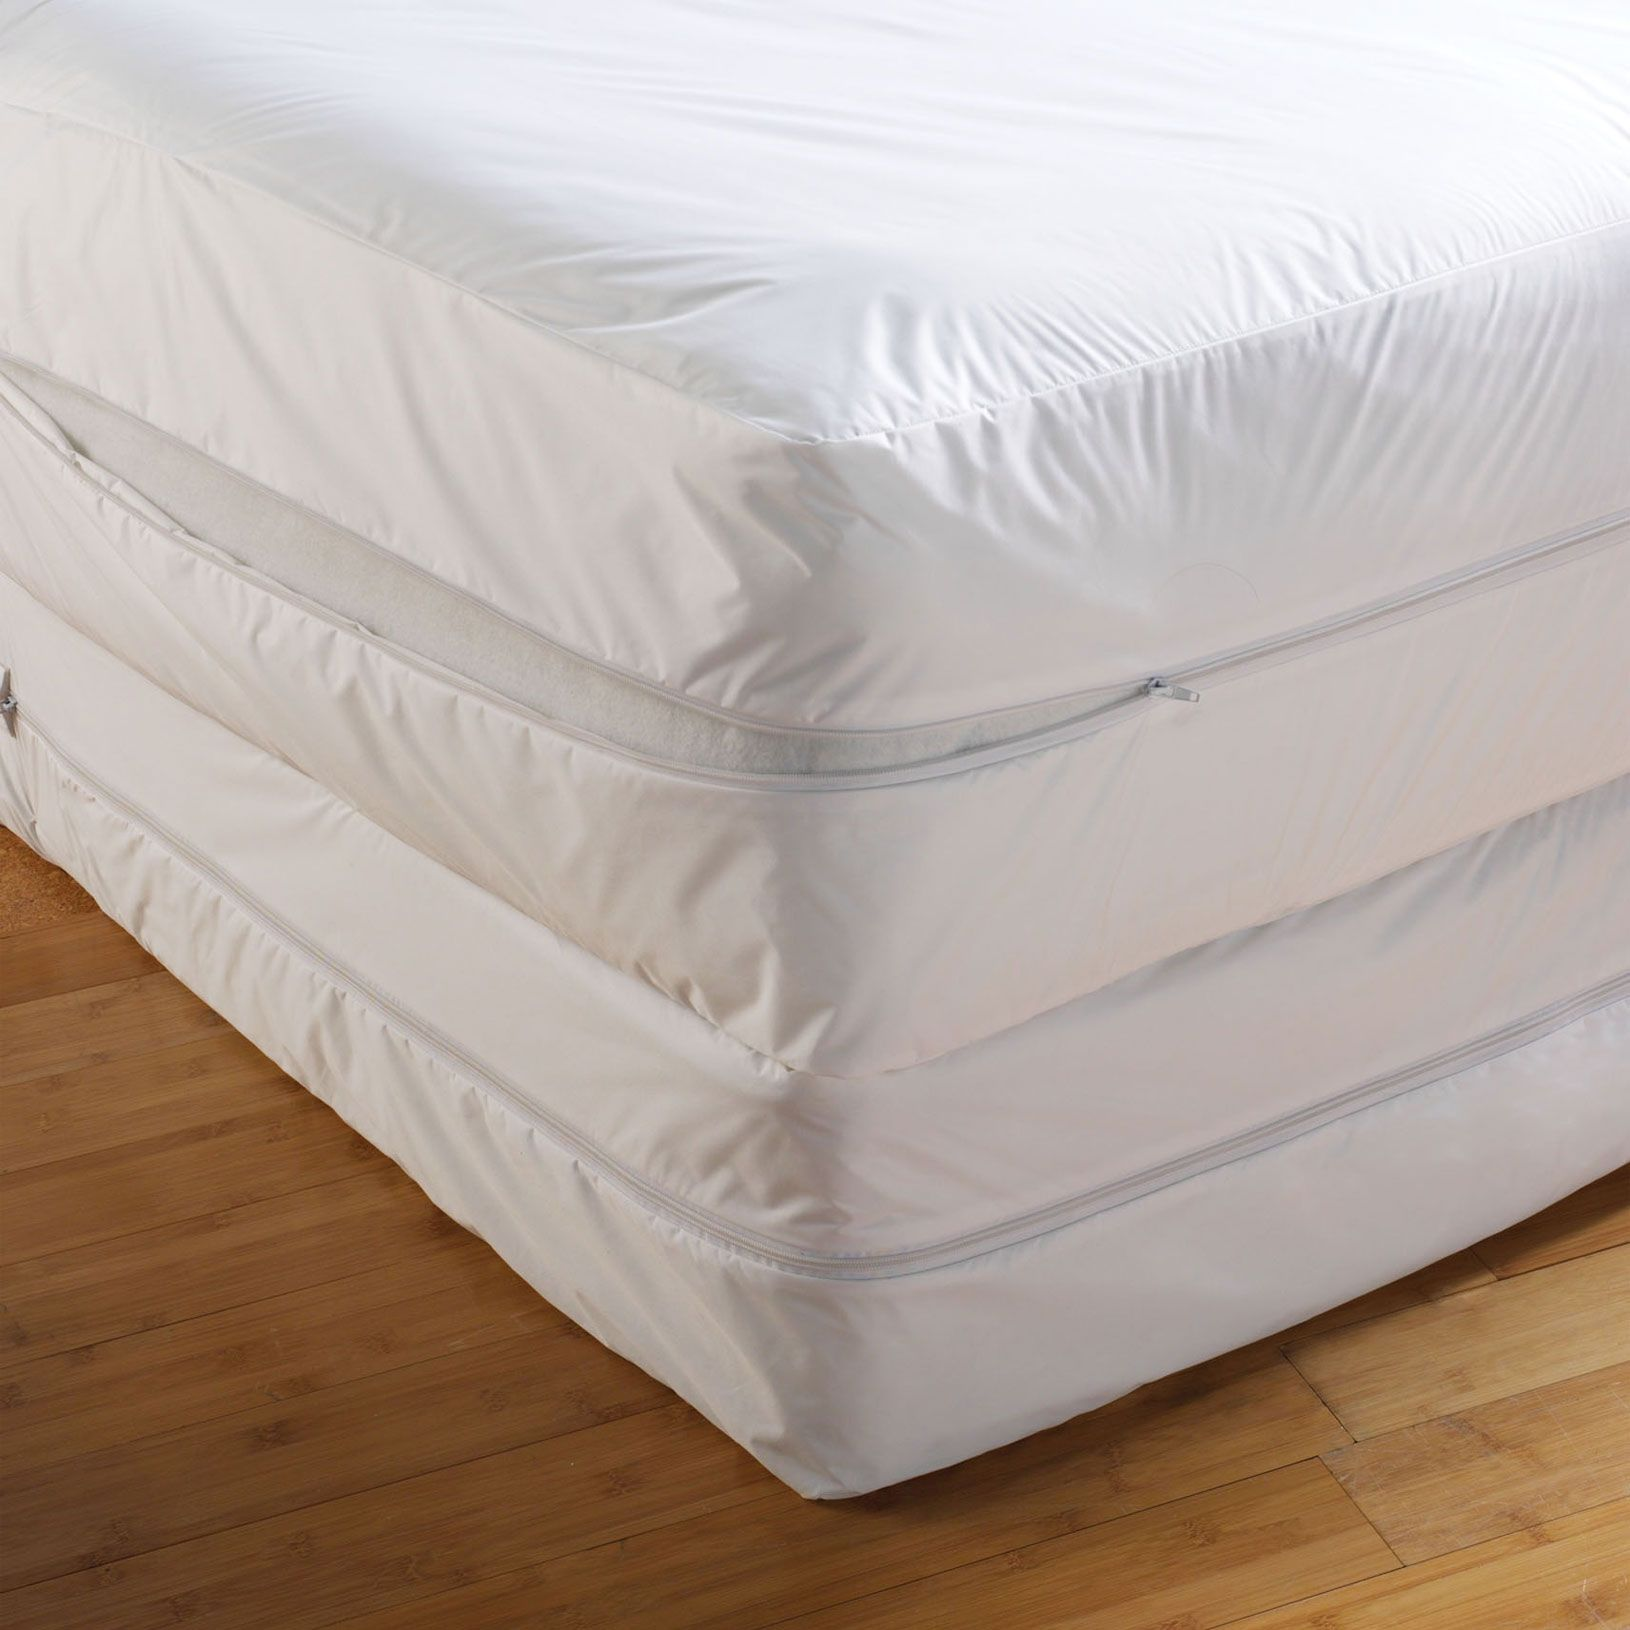 pestrol now does bed bug protectors